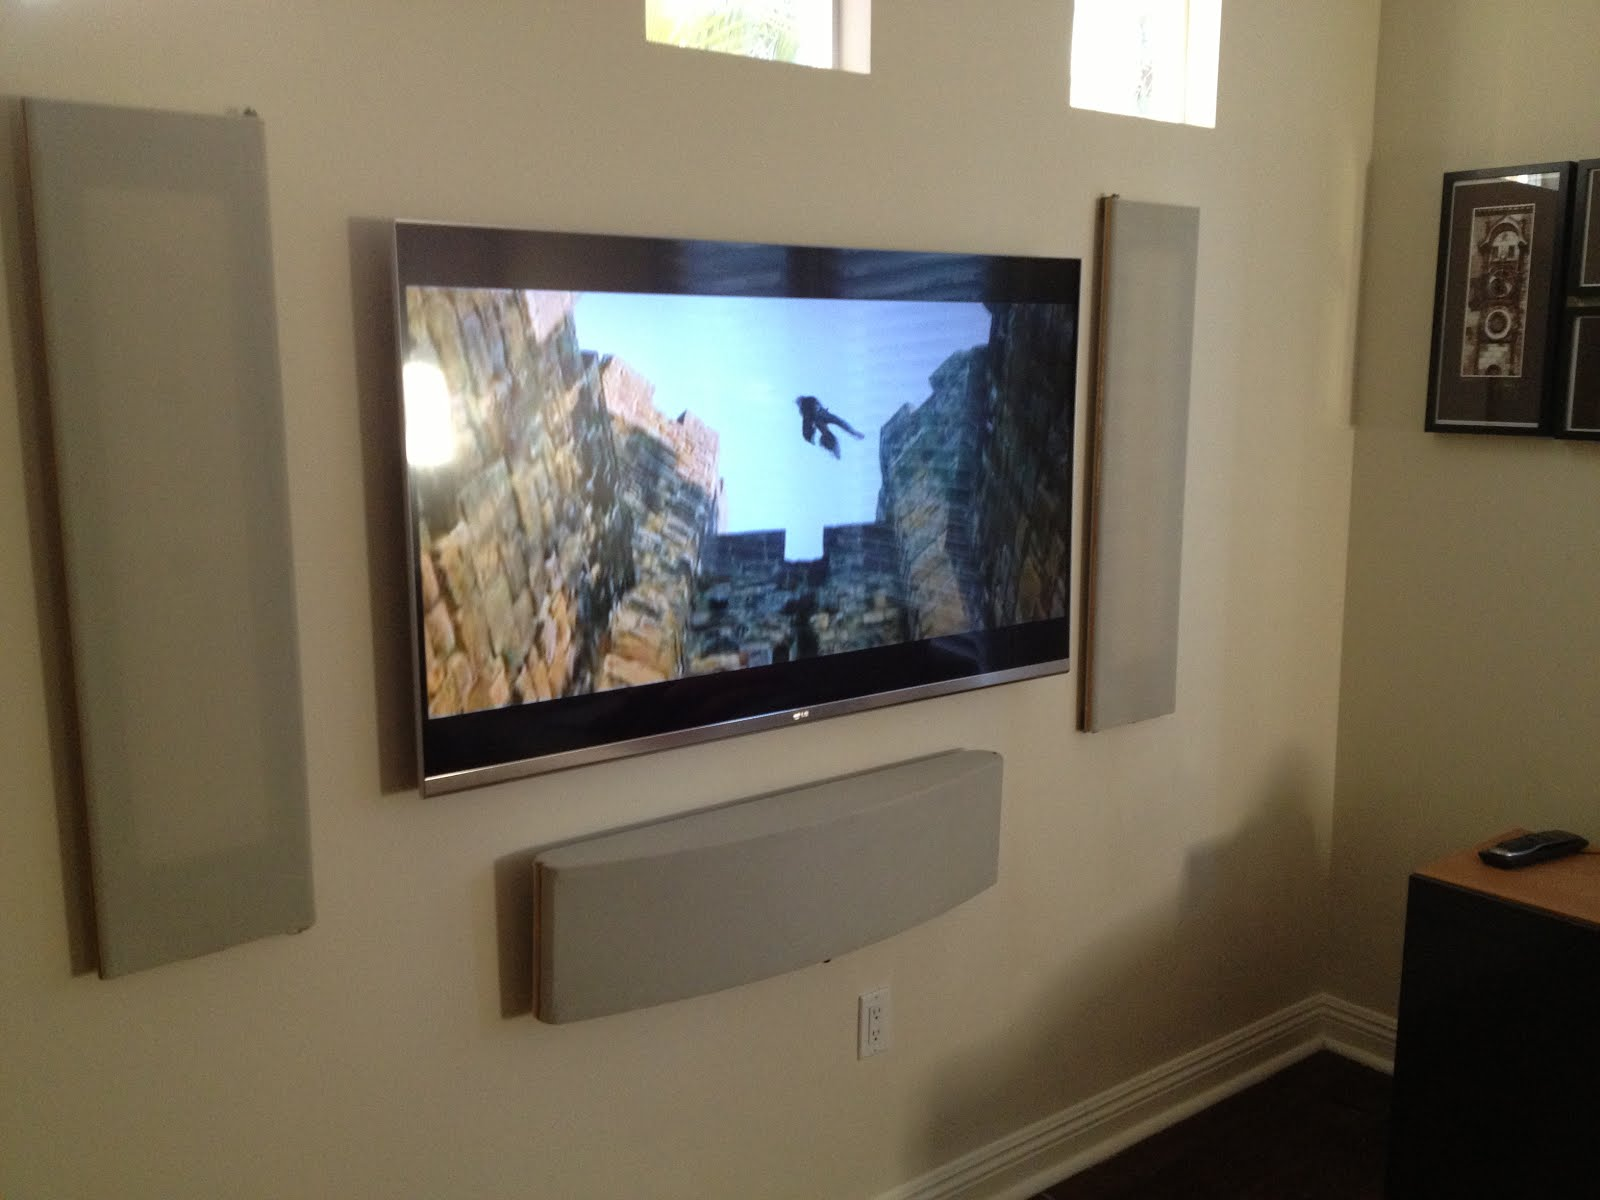 Designs For Tv On Wall : Modtech designs tv mounting